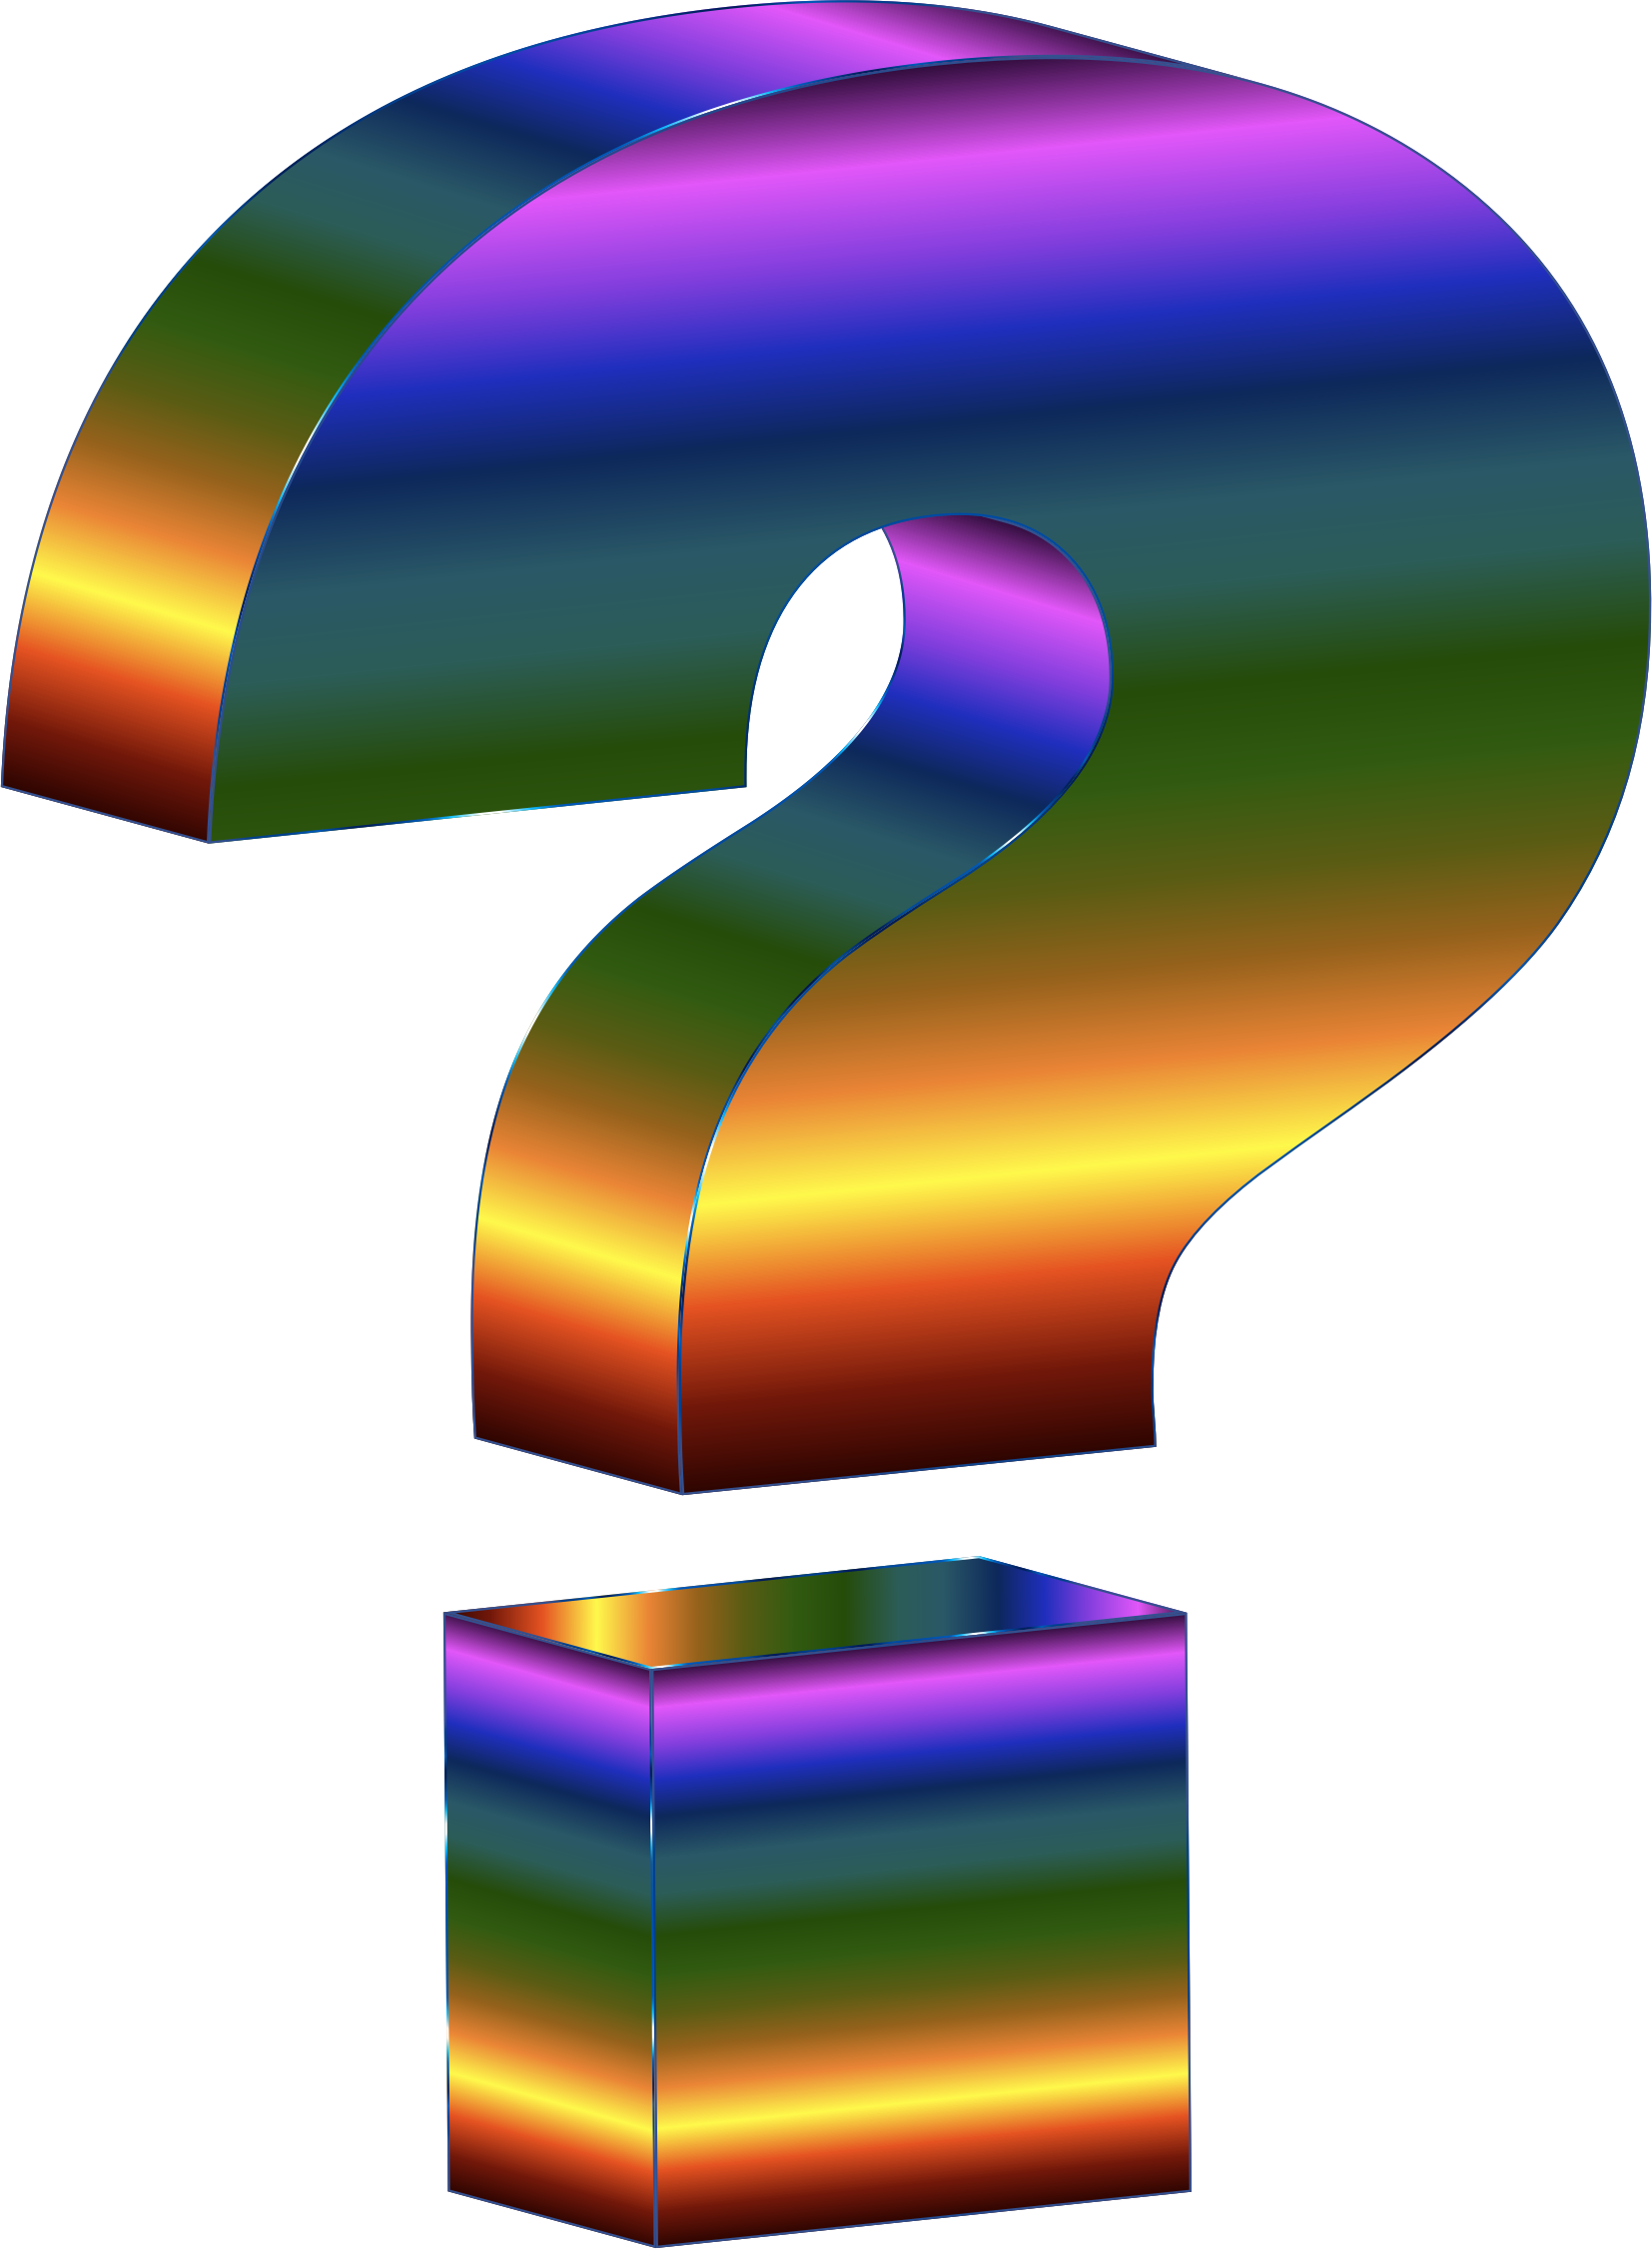 prismatic 3d question mark vector clipart image free stock photo rh goodfreephotos com  free question mark clip art images